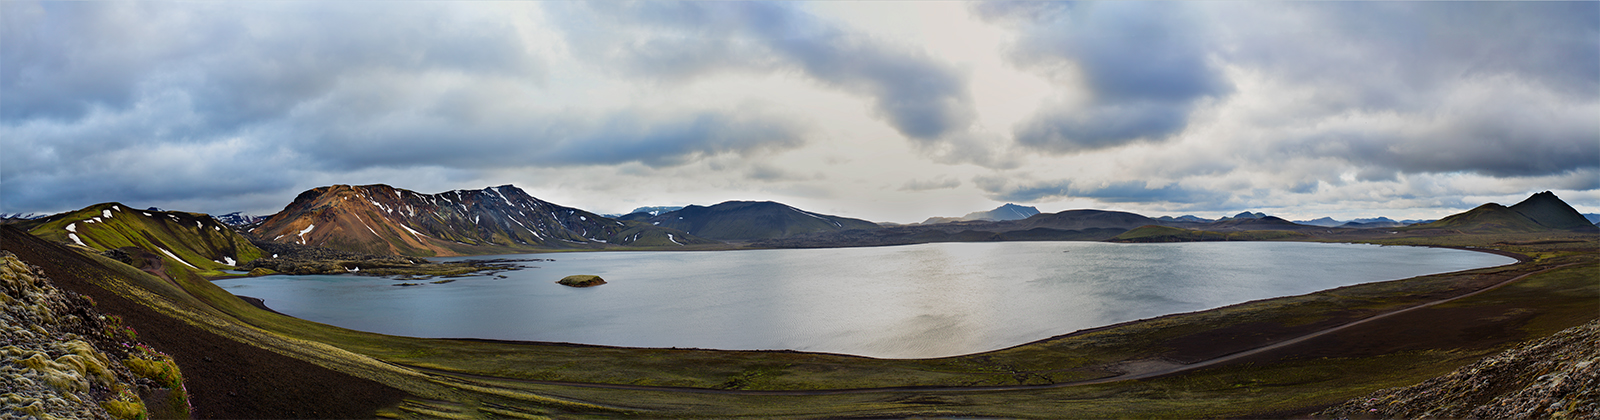 Landmannalaugar, iceland, panoramic, mountains, lake, colors, canon